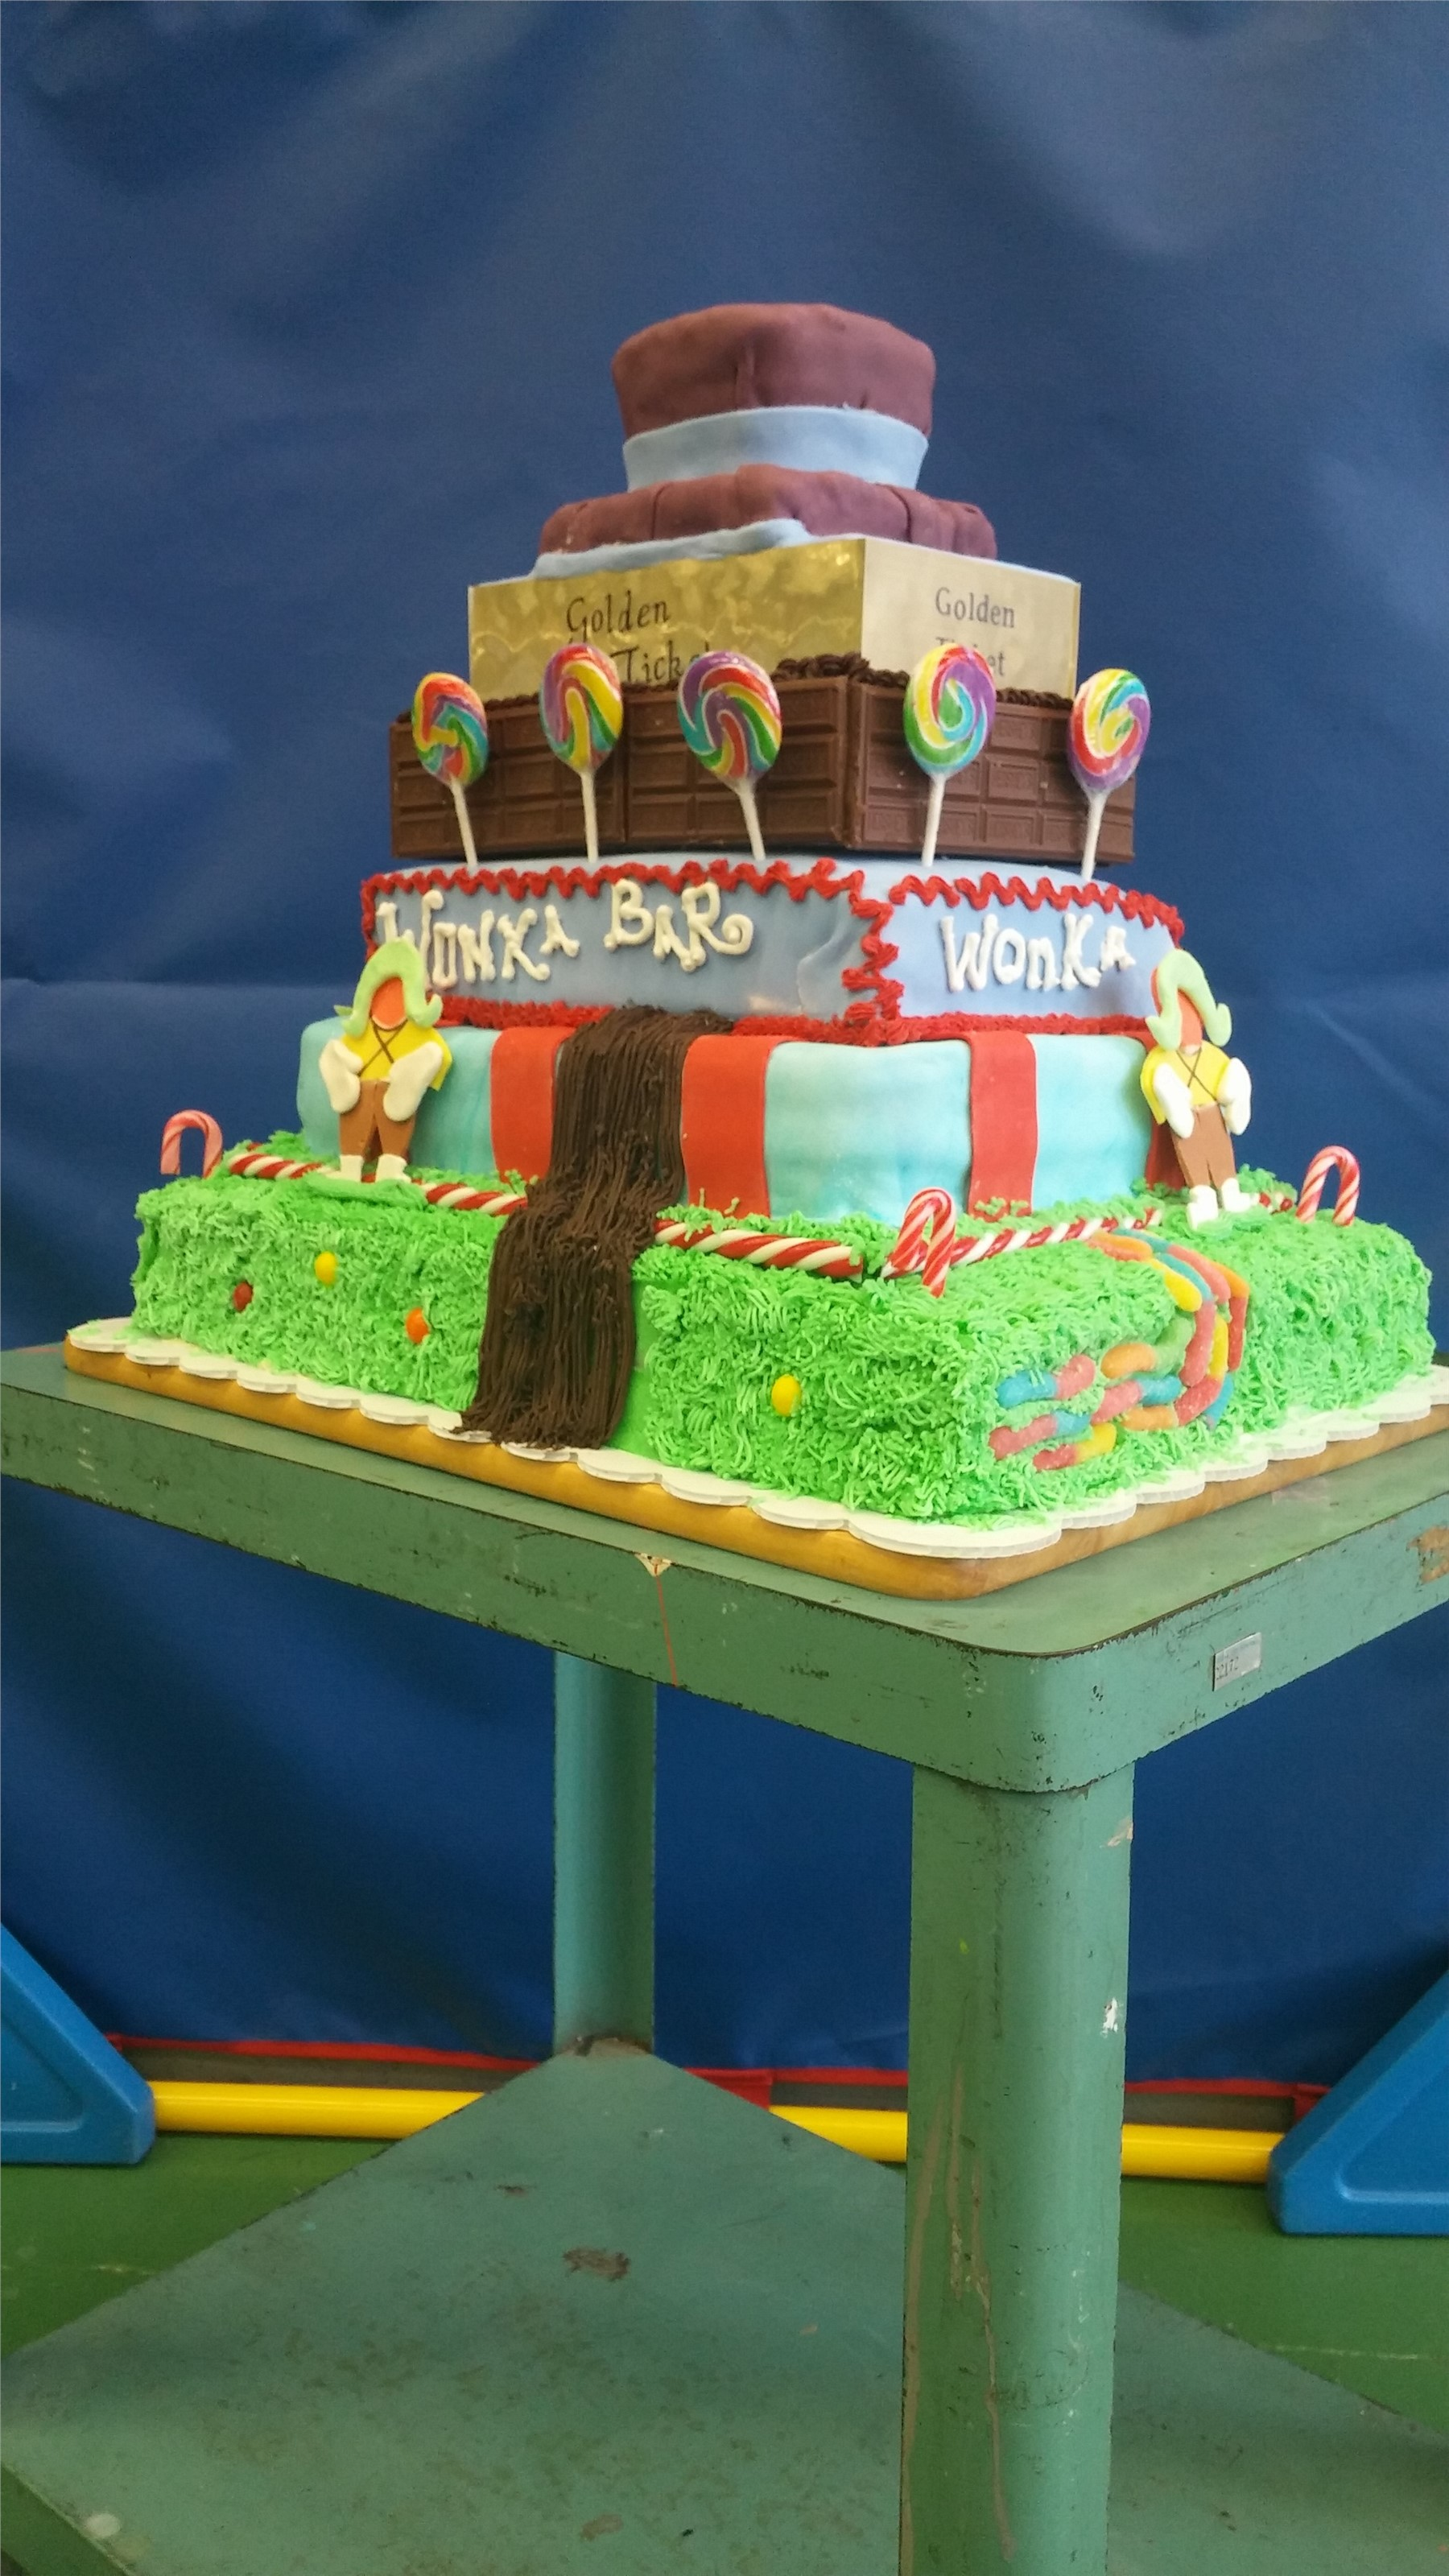 Side View of Winning Cake